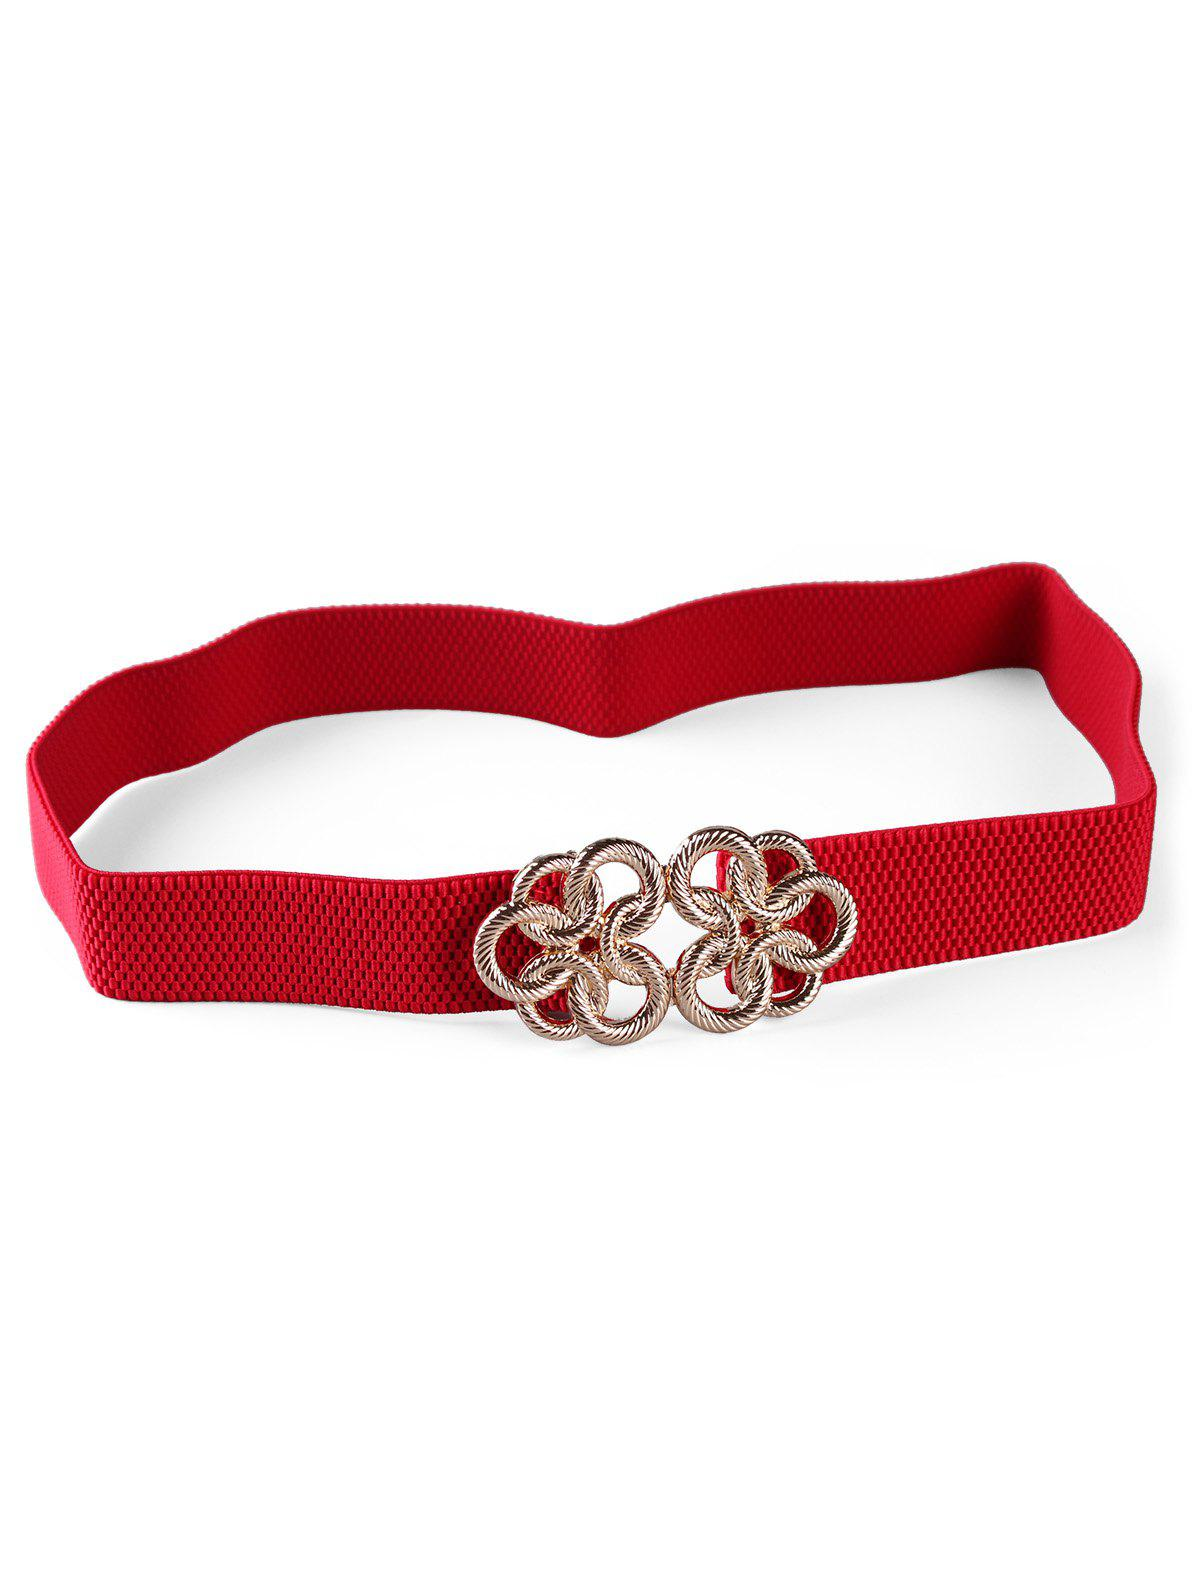 Fashion Stylish Metal Buckle Elastic Stretch Waist Belt